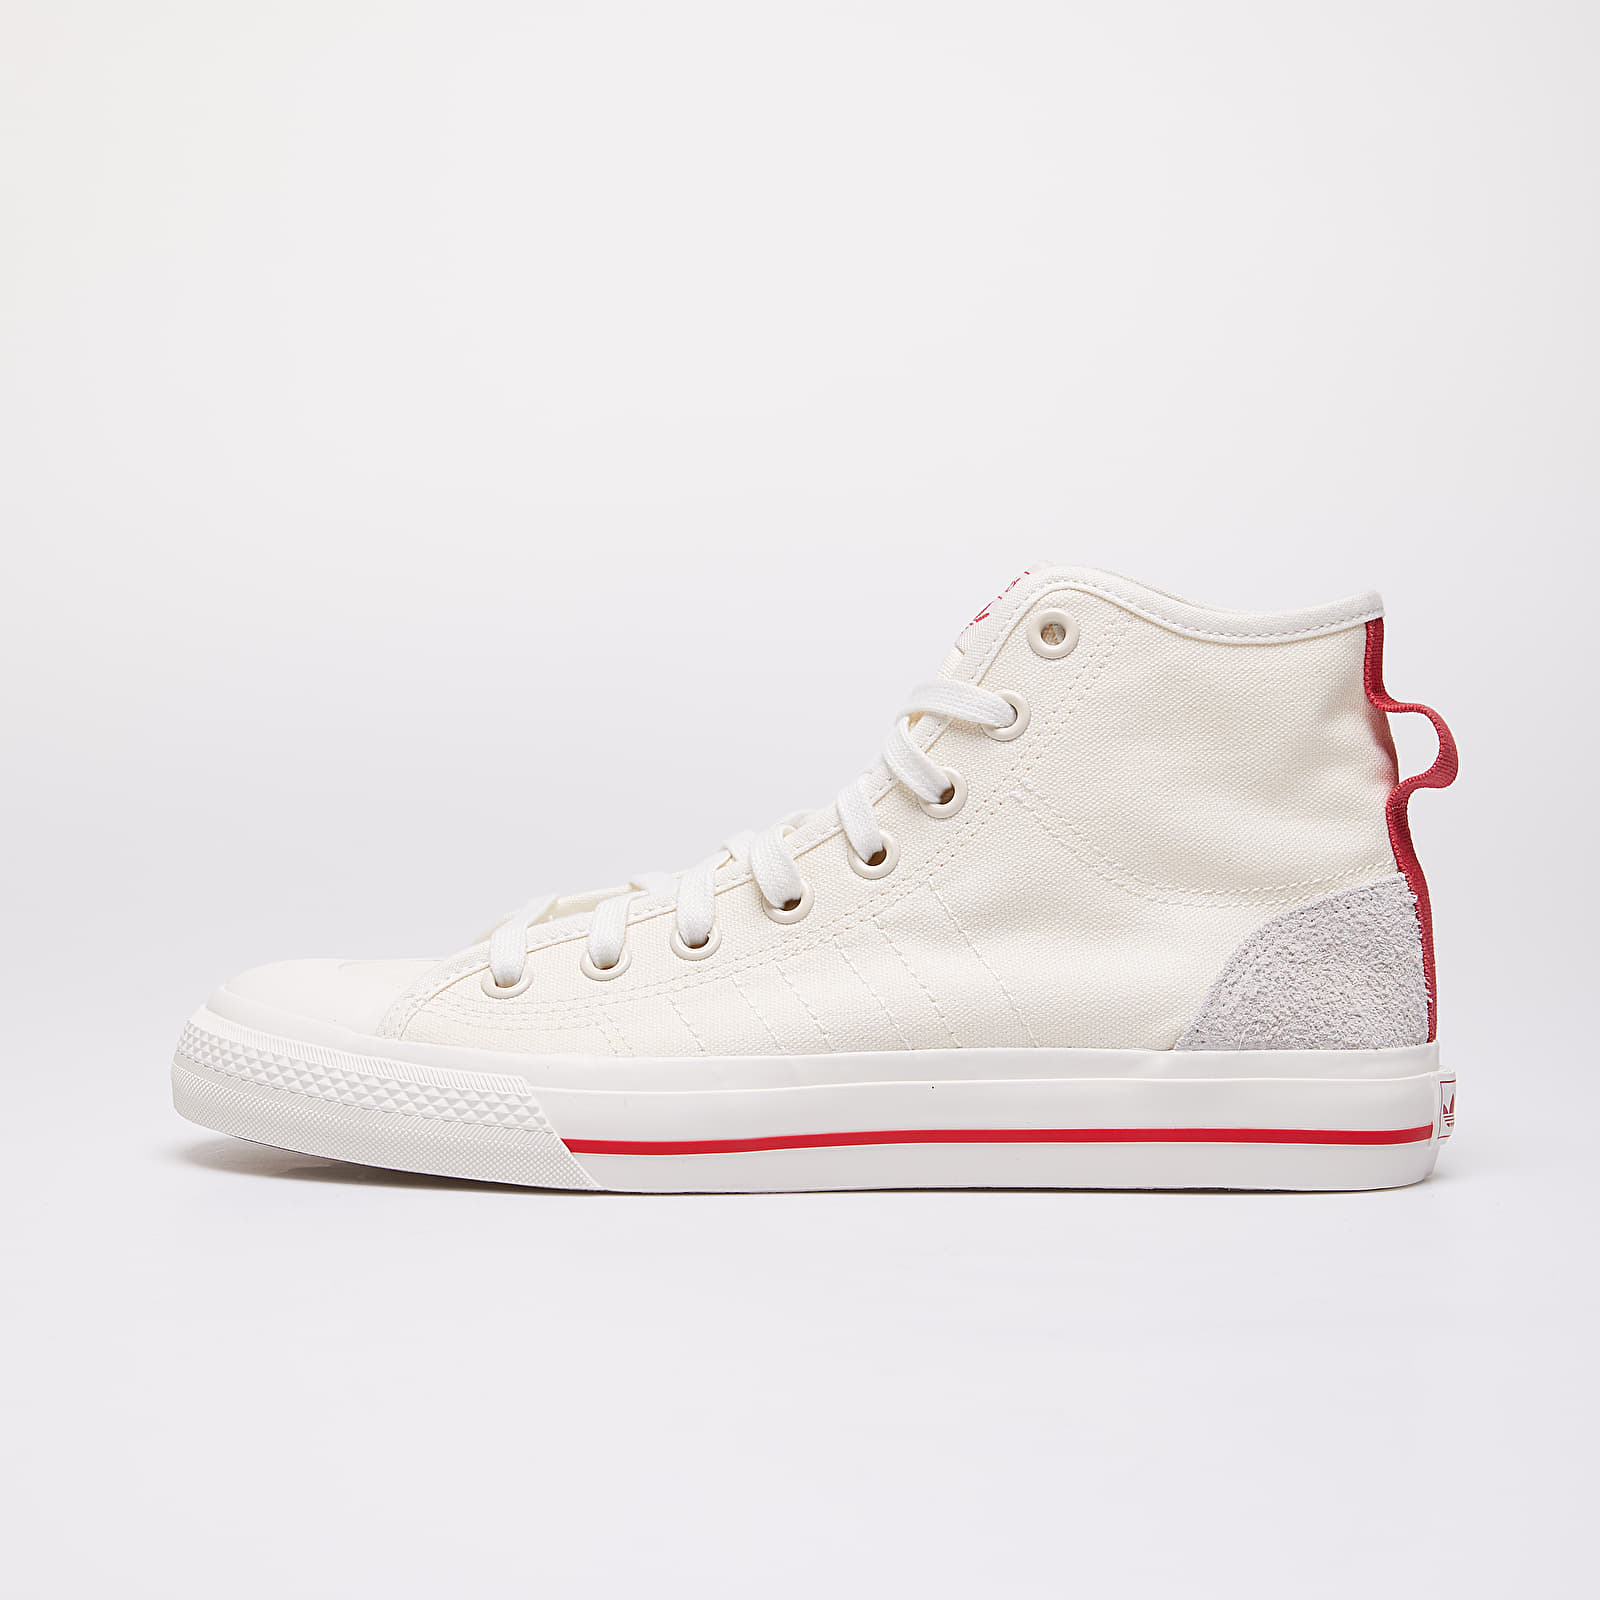 Chaussures et baskets homme adidas Nizza Hi Rf Off White/ Glow Red/ Gum44